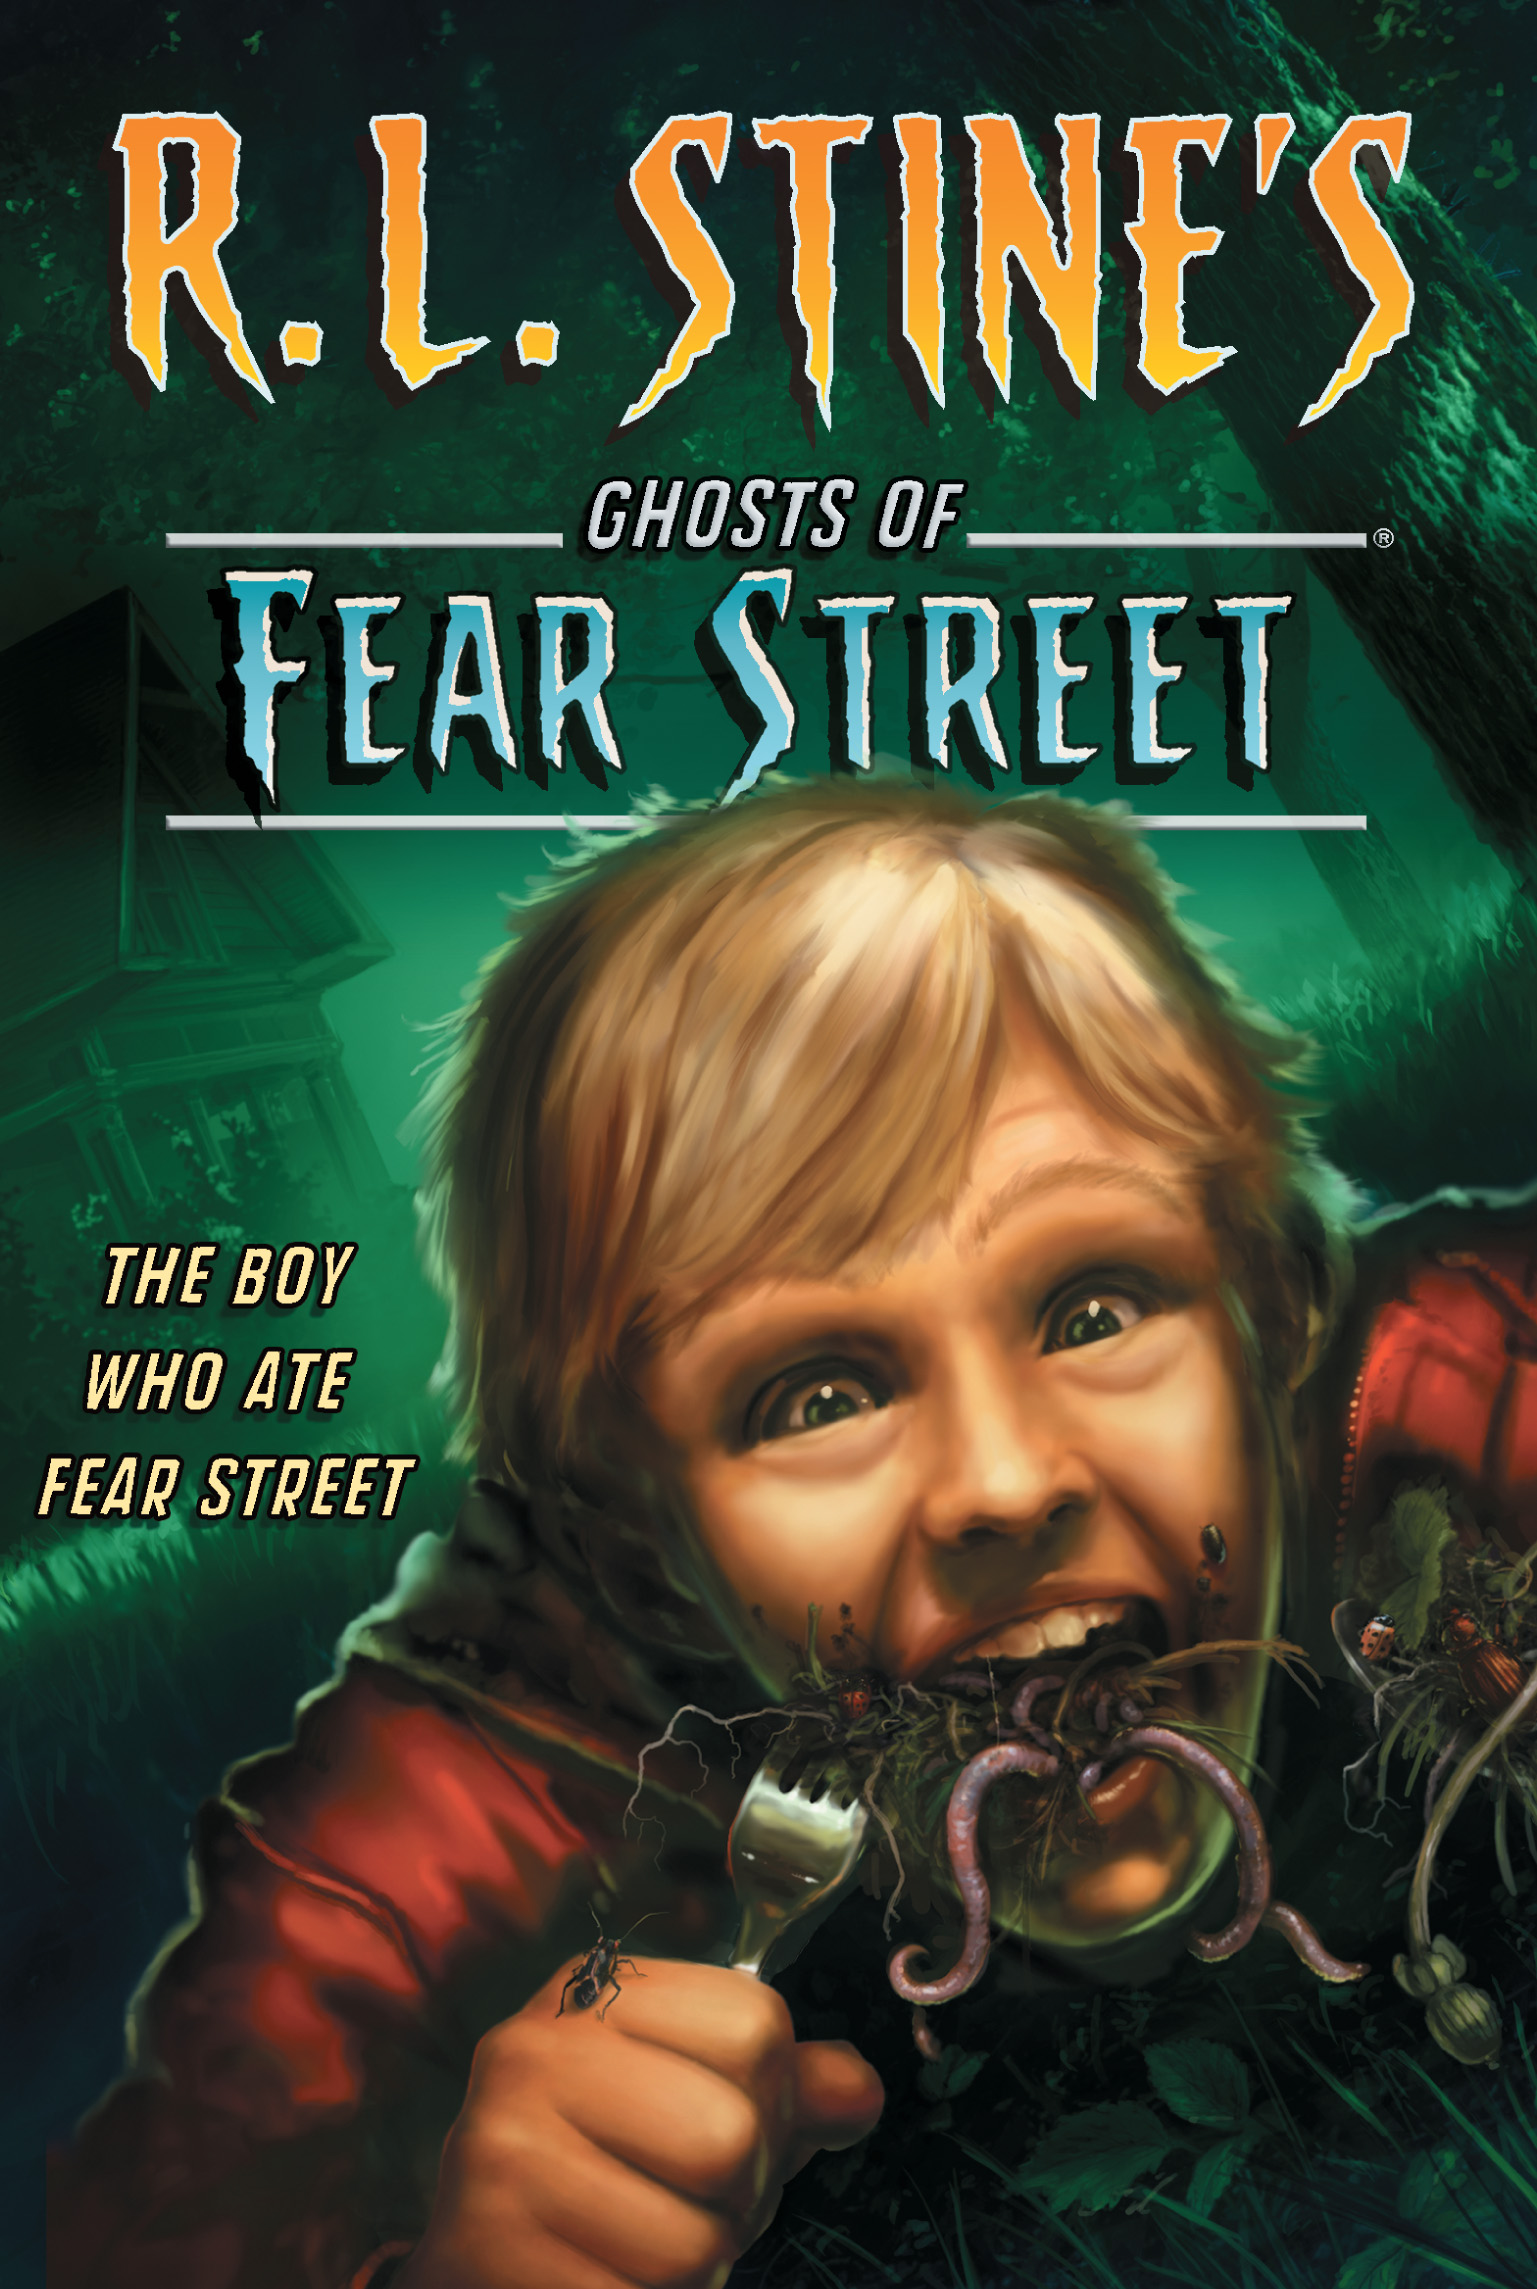 Fear Street Book Cover at http://www.simonandschuster.com/books/The-Boy-Who-Ate-Fear-Street/R-L-Stine/GHOSTS-OF-FEAR-ST/9781442417199